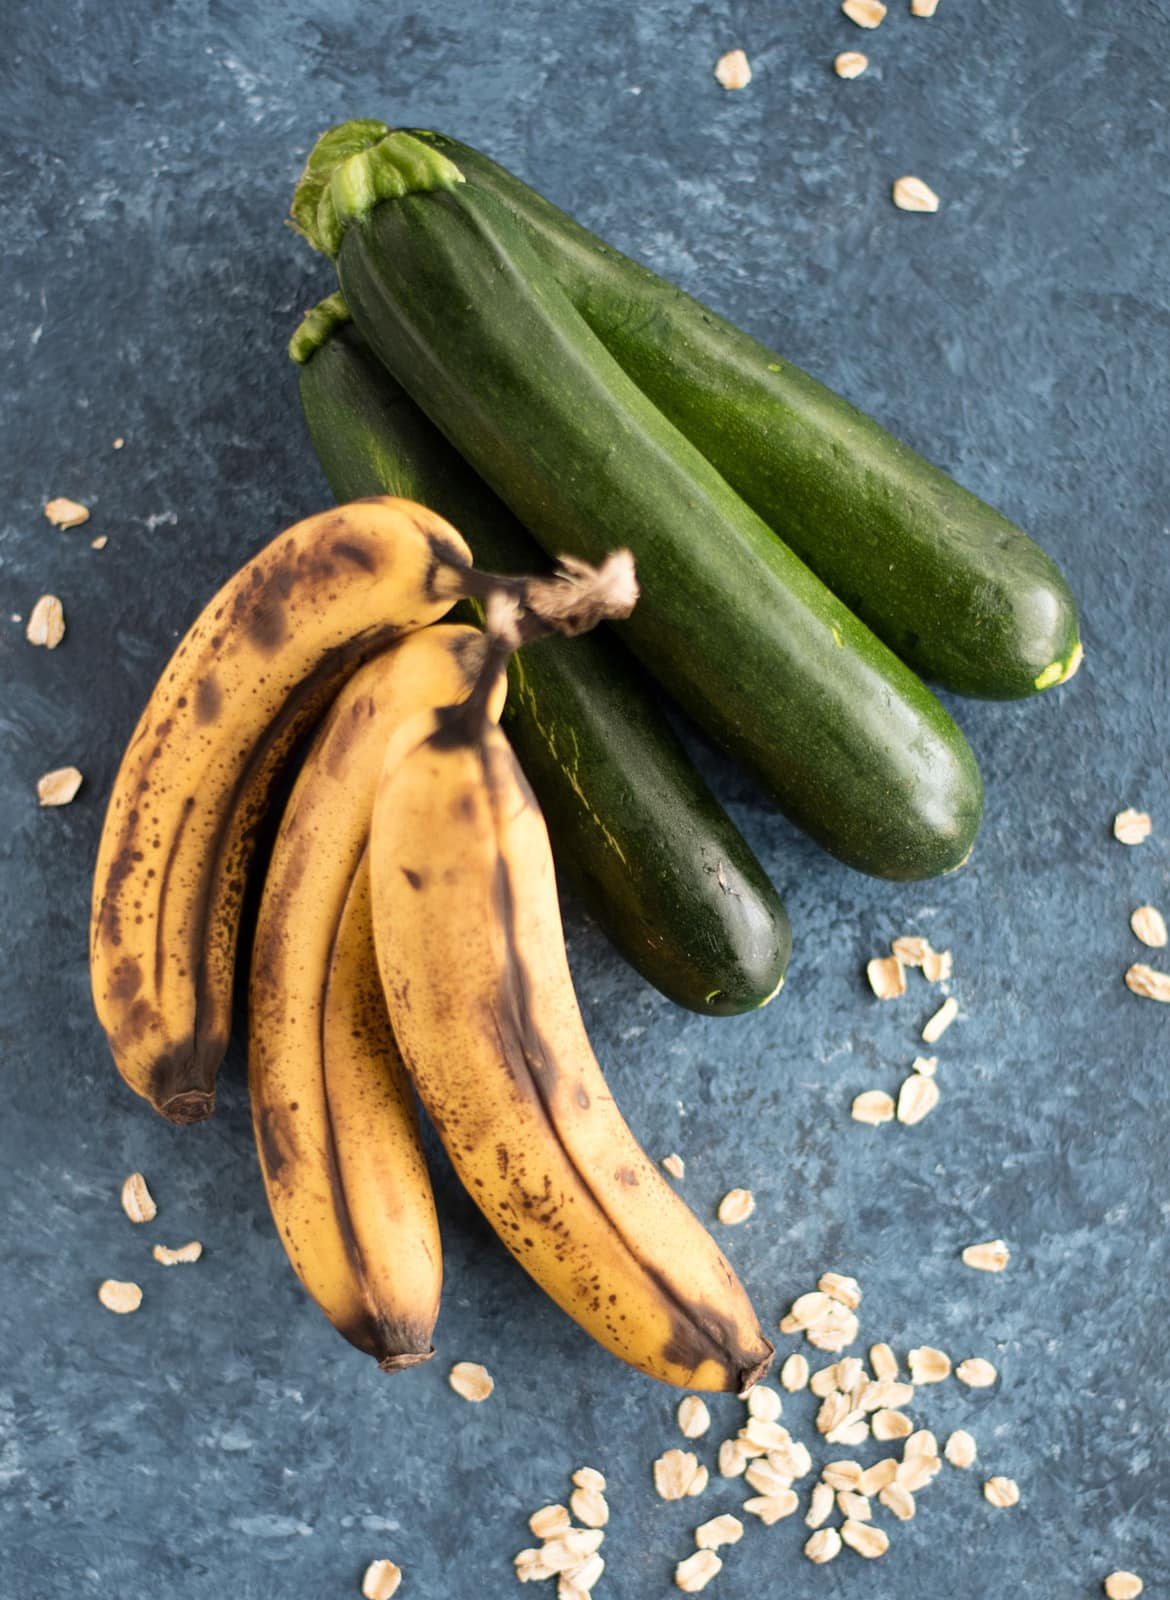 zucchini and brown bananas